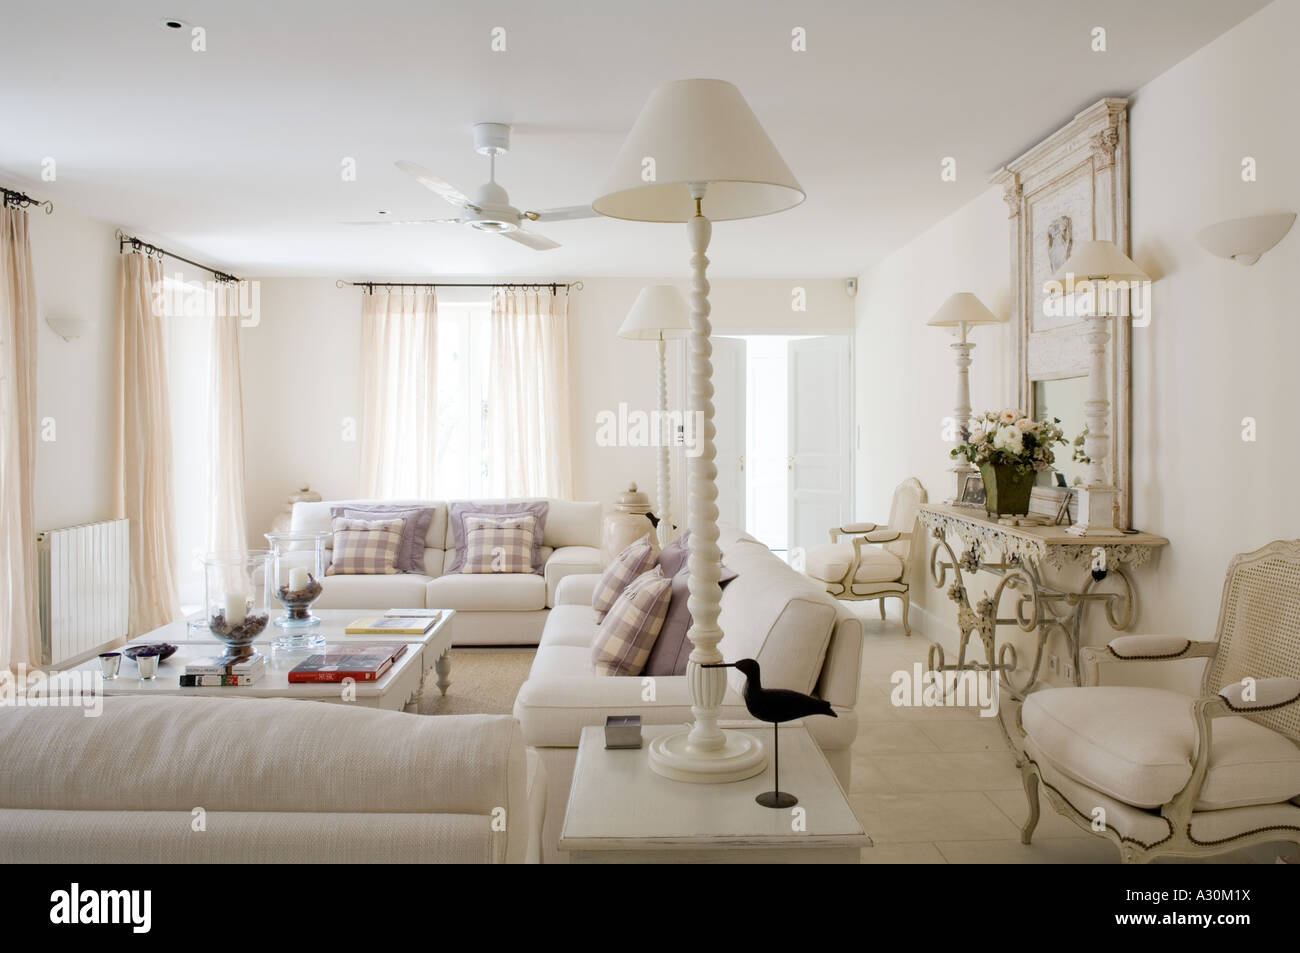 White living room with matching lamps and ceiling fan Stock Photo ...